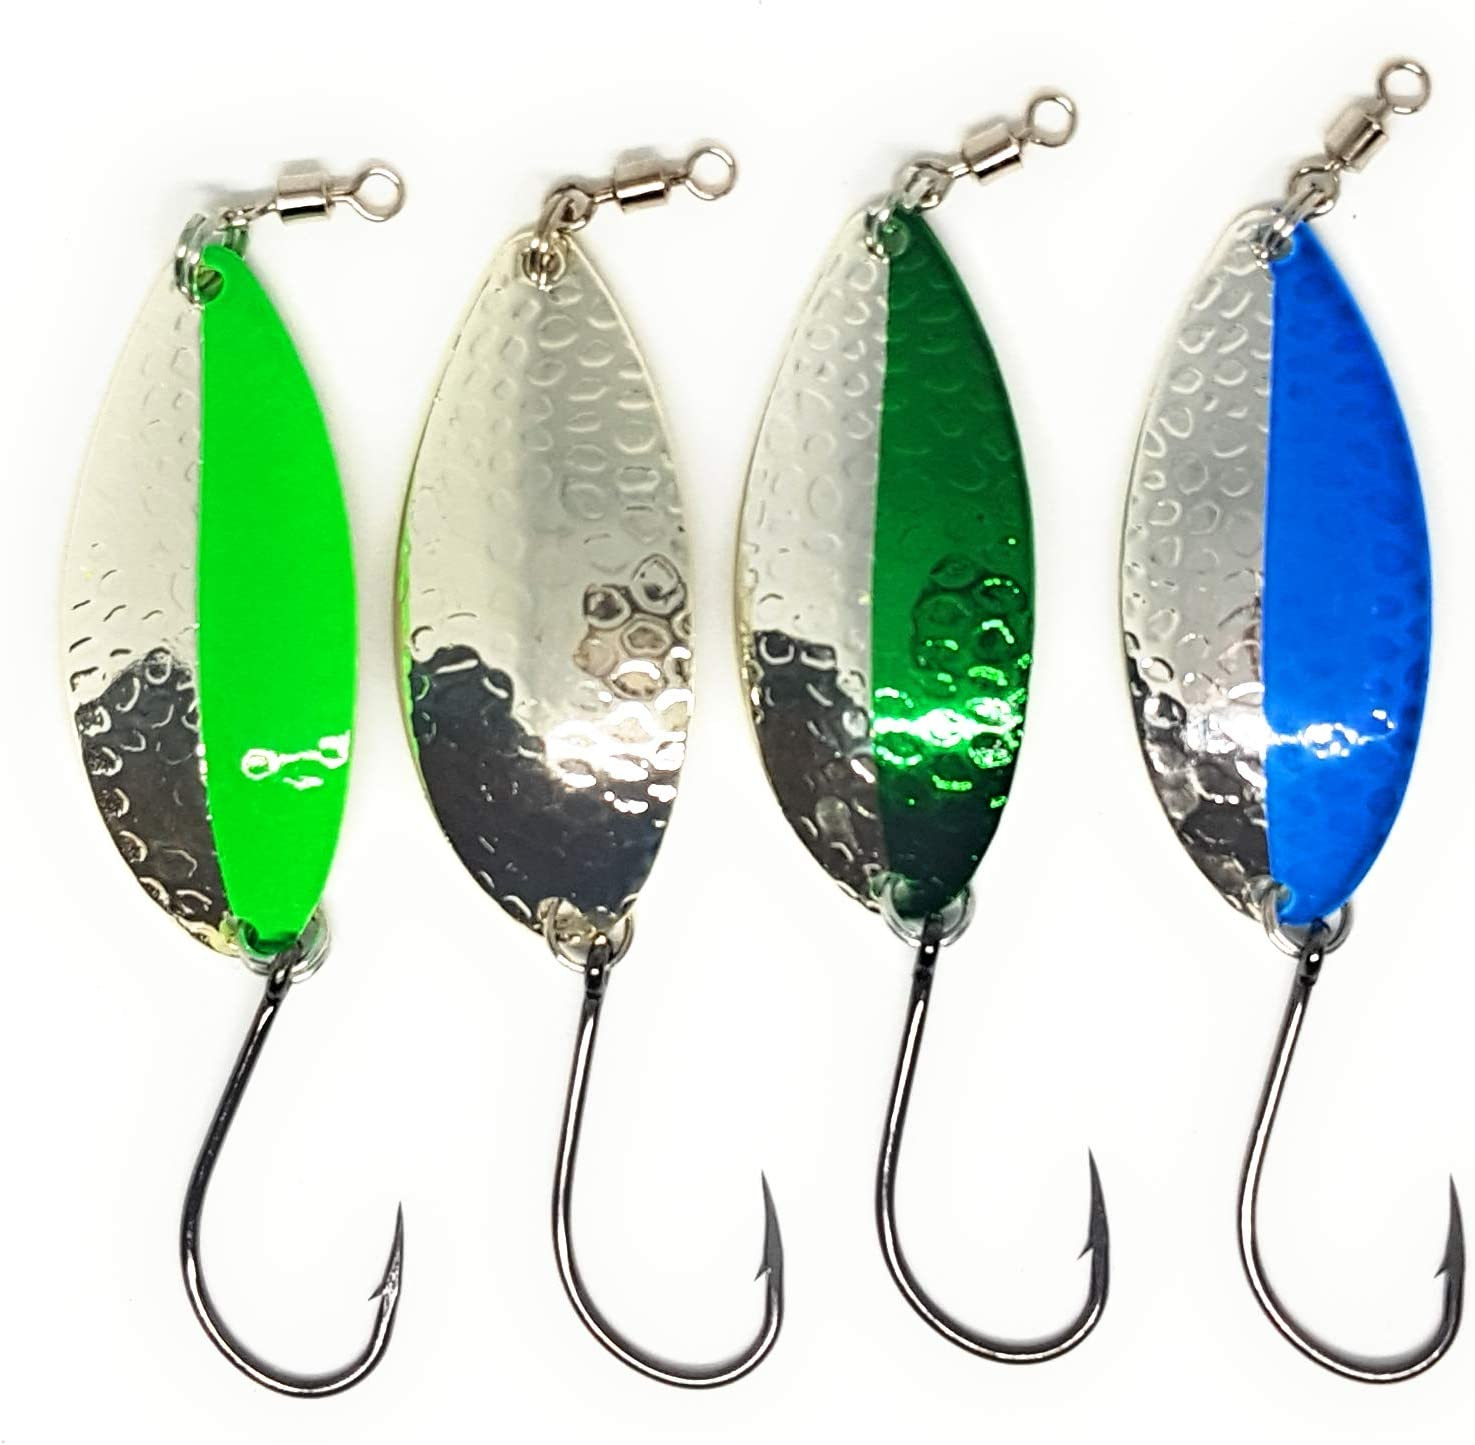 Great Action Slays Salmon Steelhead 5//8oz Two Sizes 2//5oz Trout Bass Prime Lures Casting Fishing Spoons 4 Pack